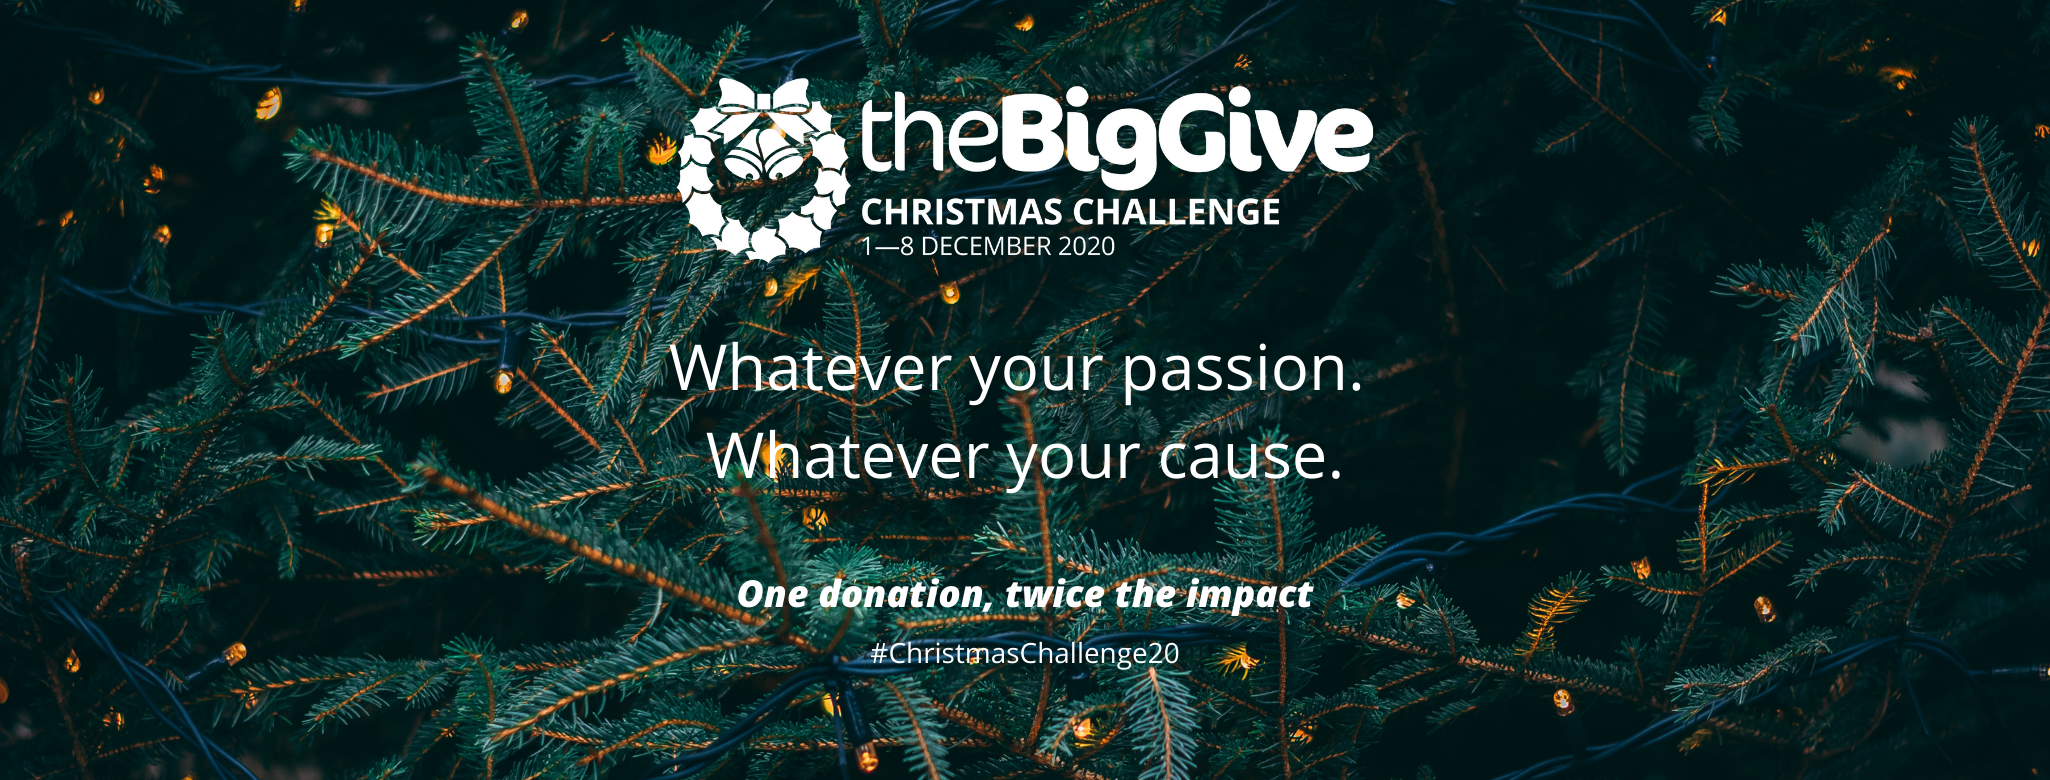 Big Give Christmas Challenge 2020 goes live!